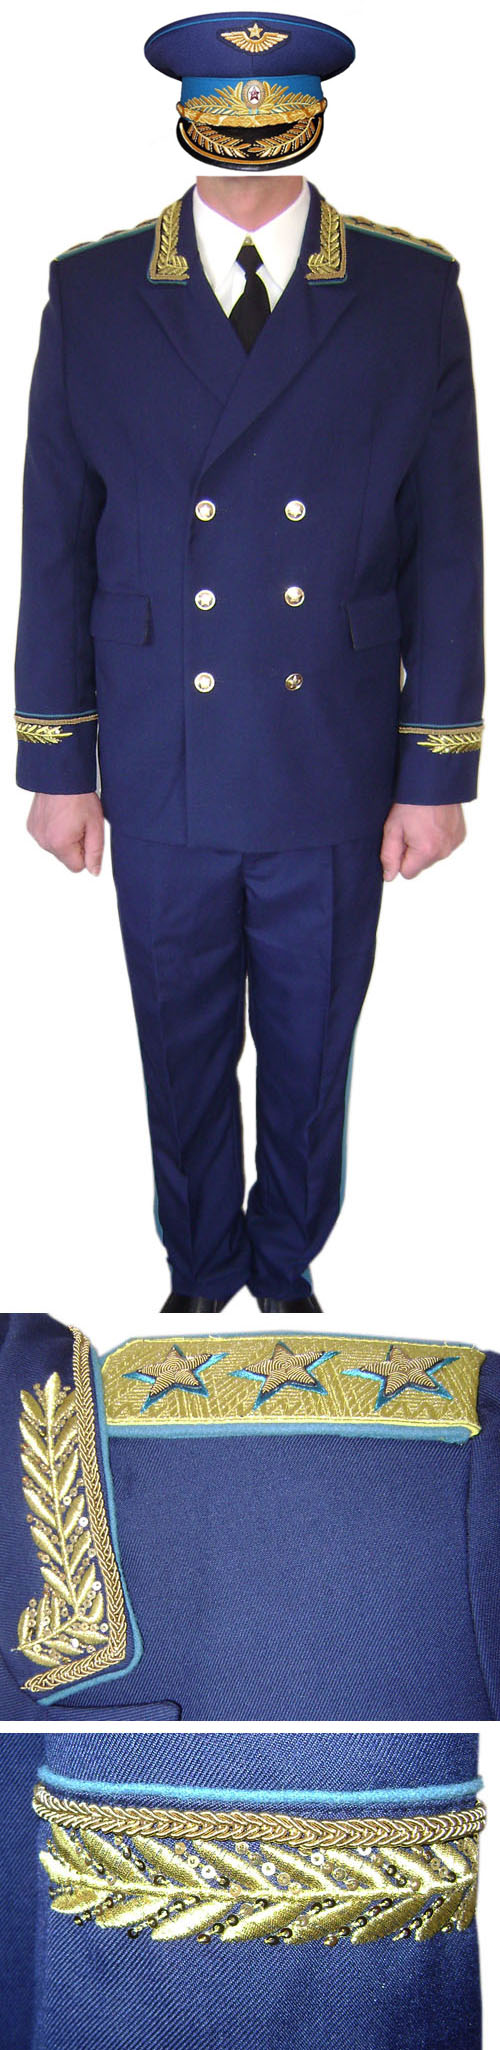 USSR Air Force Colonel-General parade uniform for sale - buy